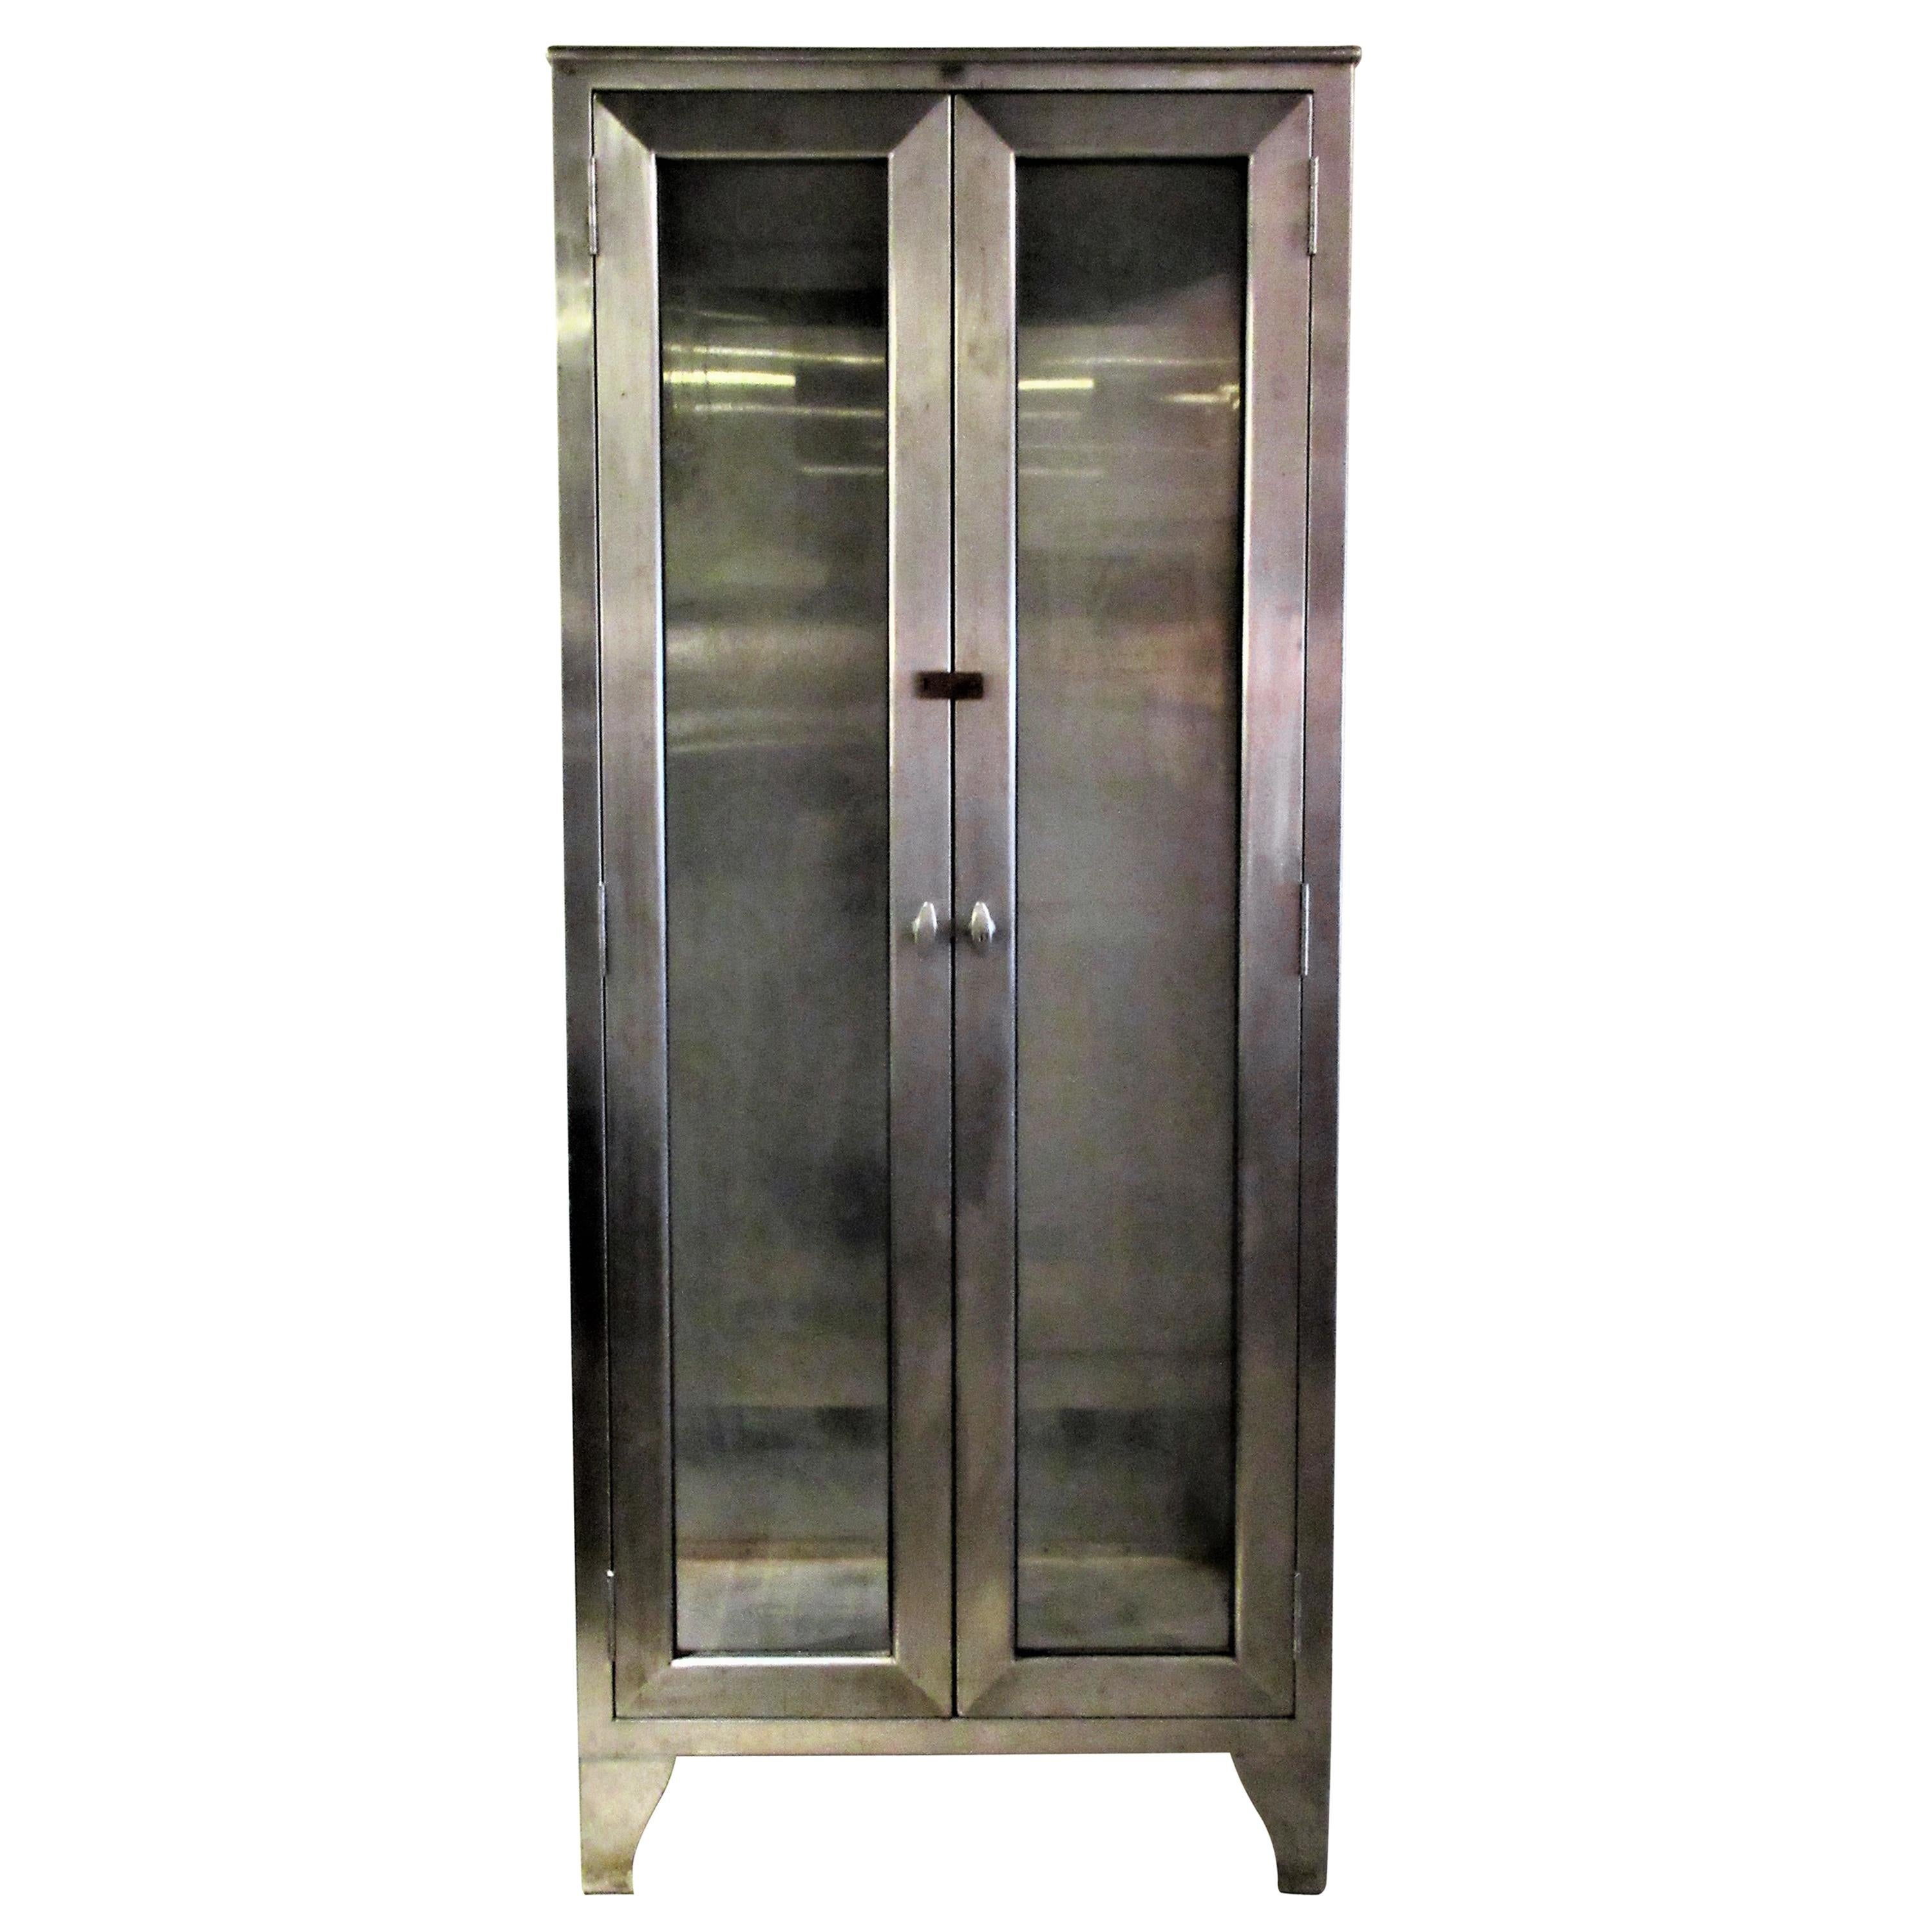 Vtg 1940 50s simmons furniture metal medical Yhome 1940s American Stainless Steel Industrial Medical Cabinet Ebay Industrial Furniture 5210 For Sale At 1stdibs Page